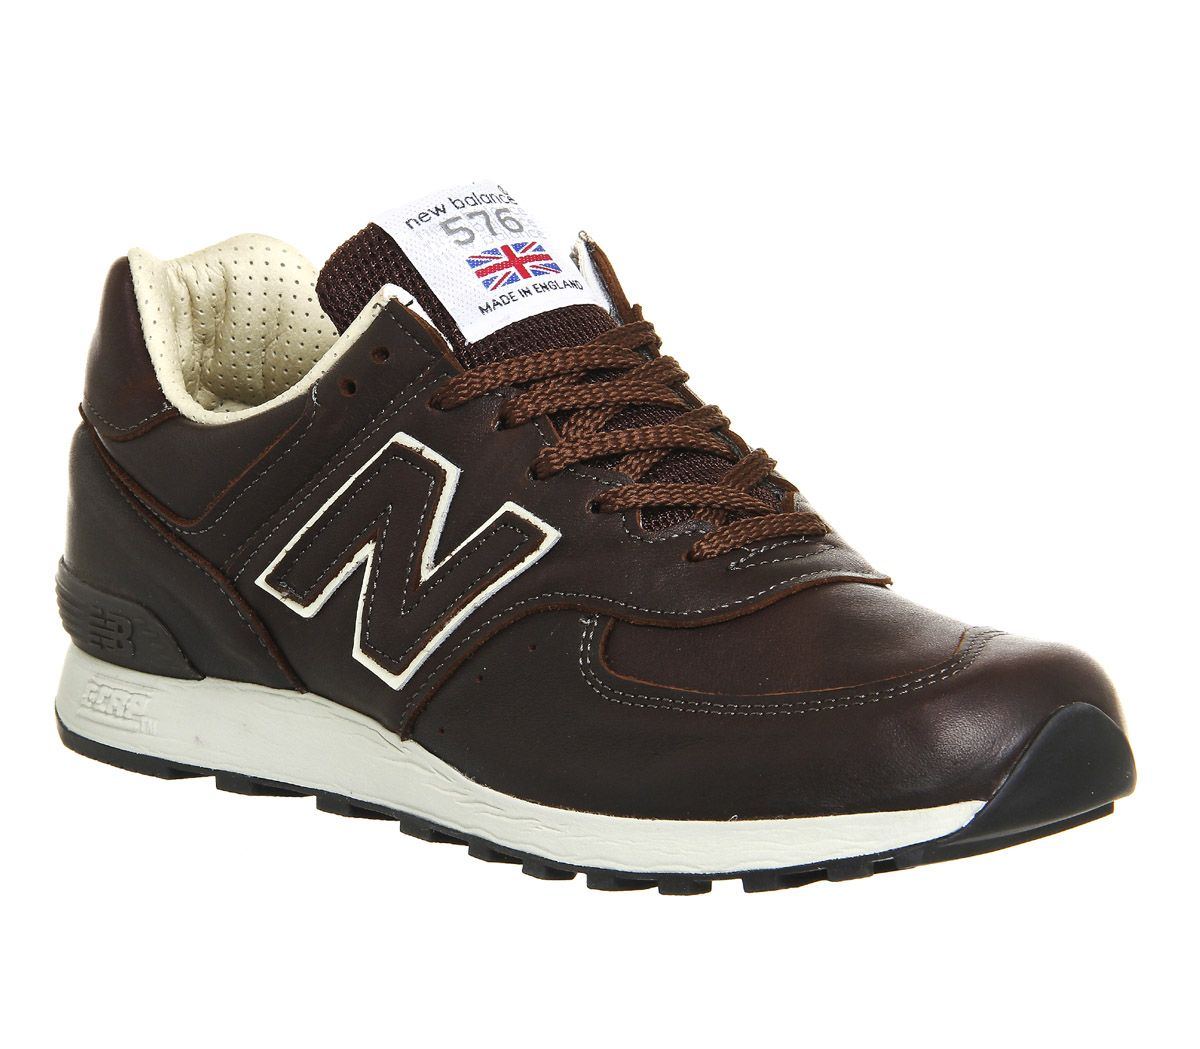 New Balance, 576 Trainers, Brown Leather